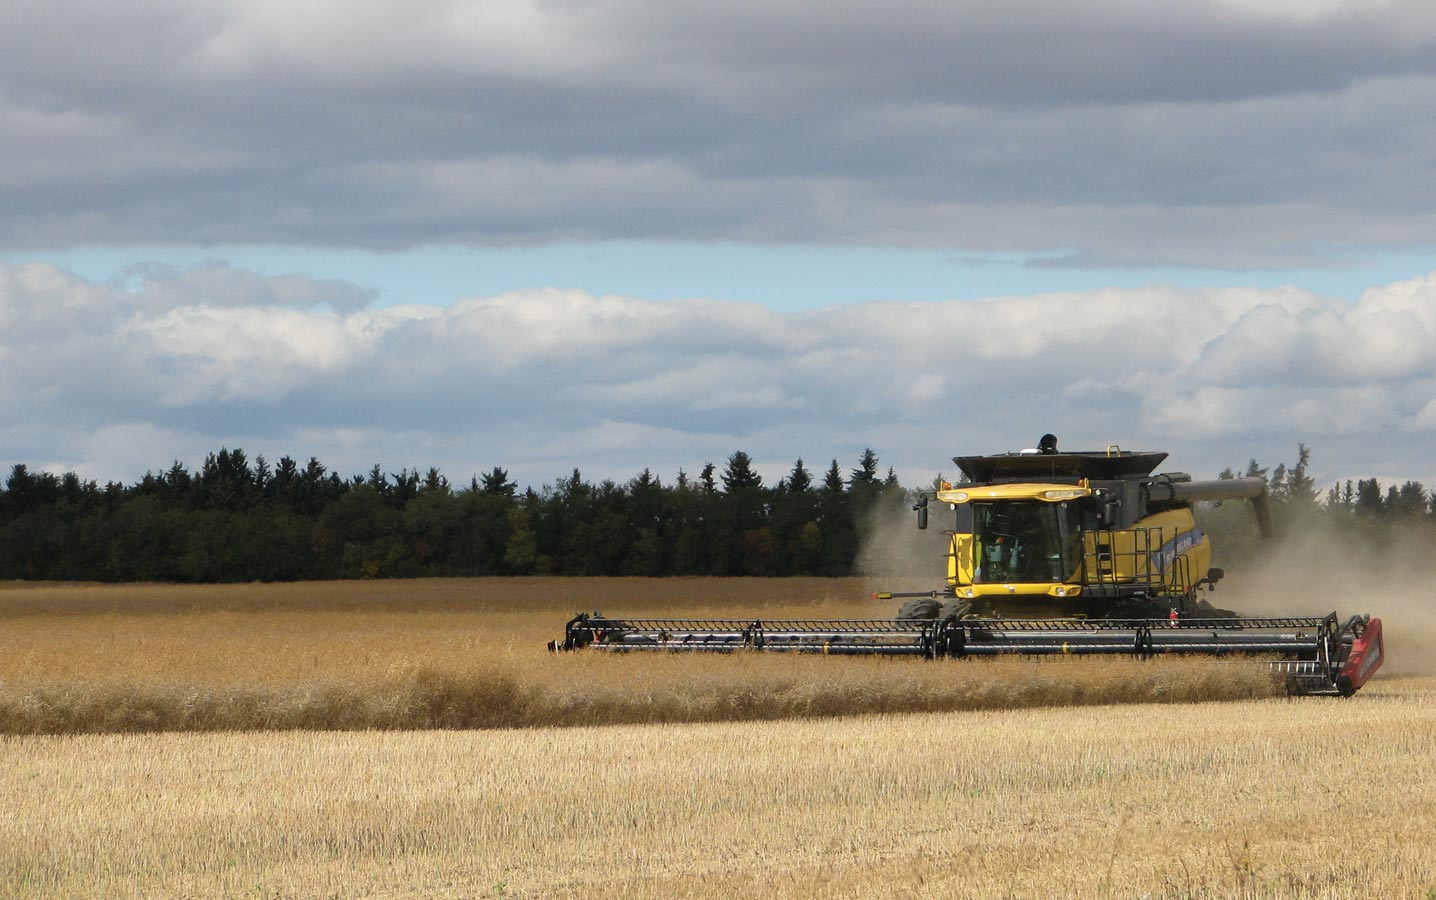 Harvest Most Advanced in the Southwest